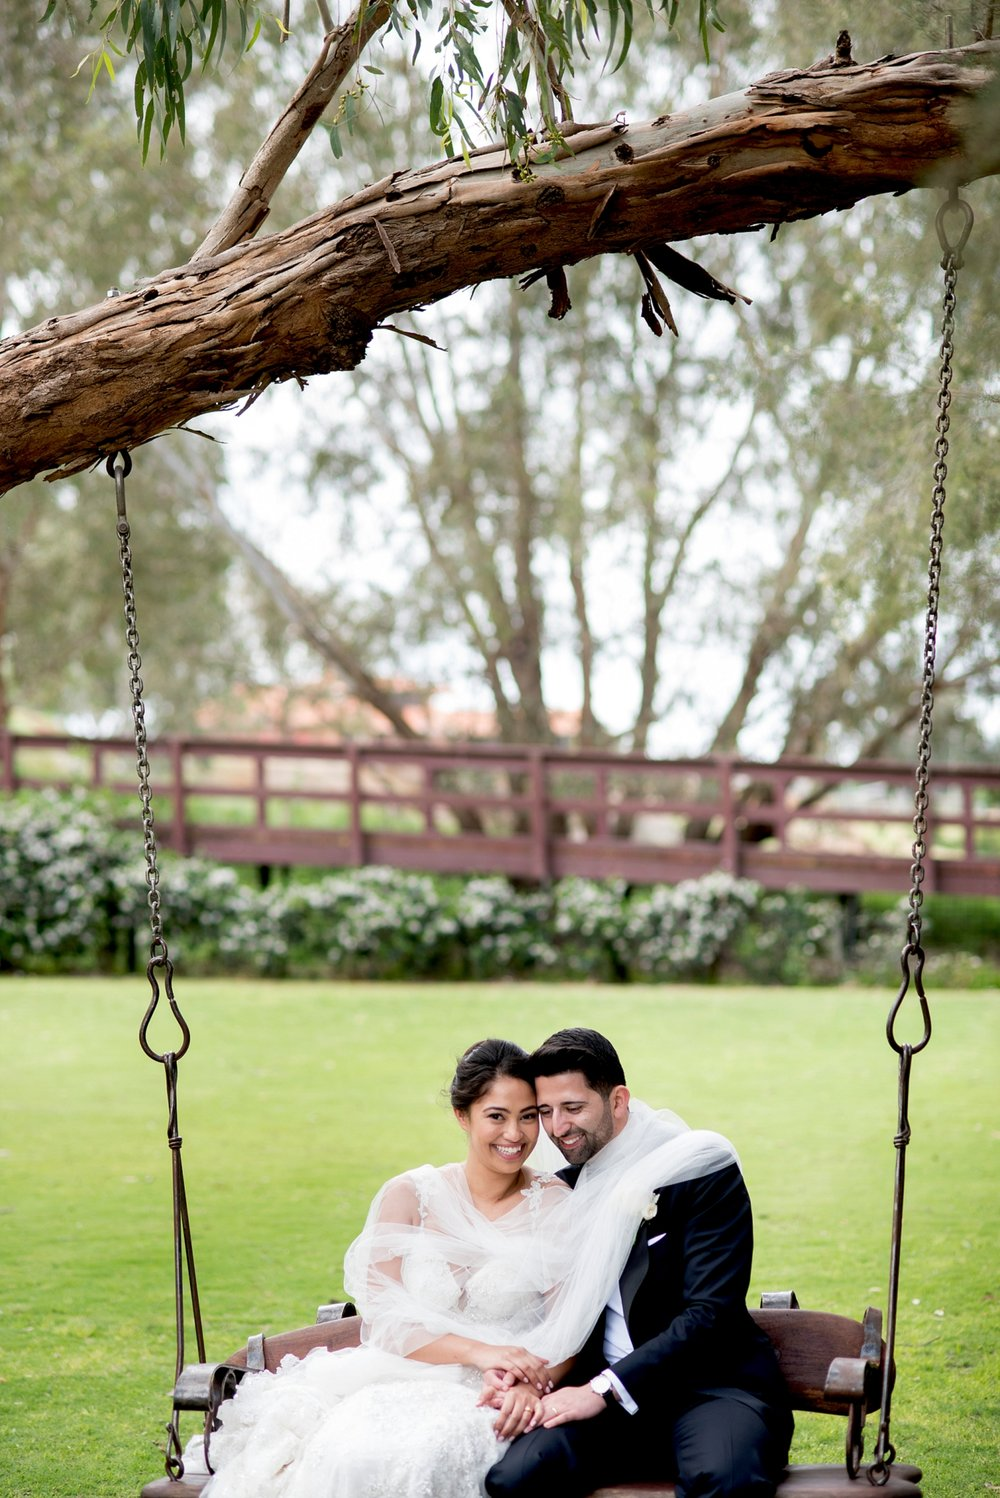 51_caversham house swing wedding perth.jpg